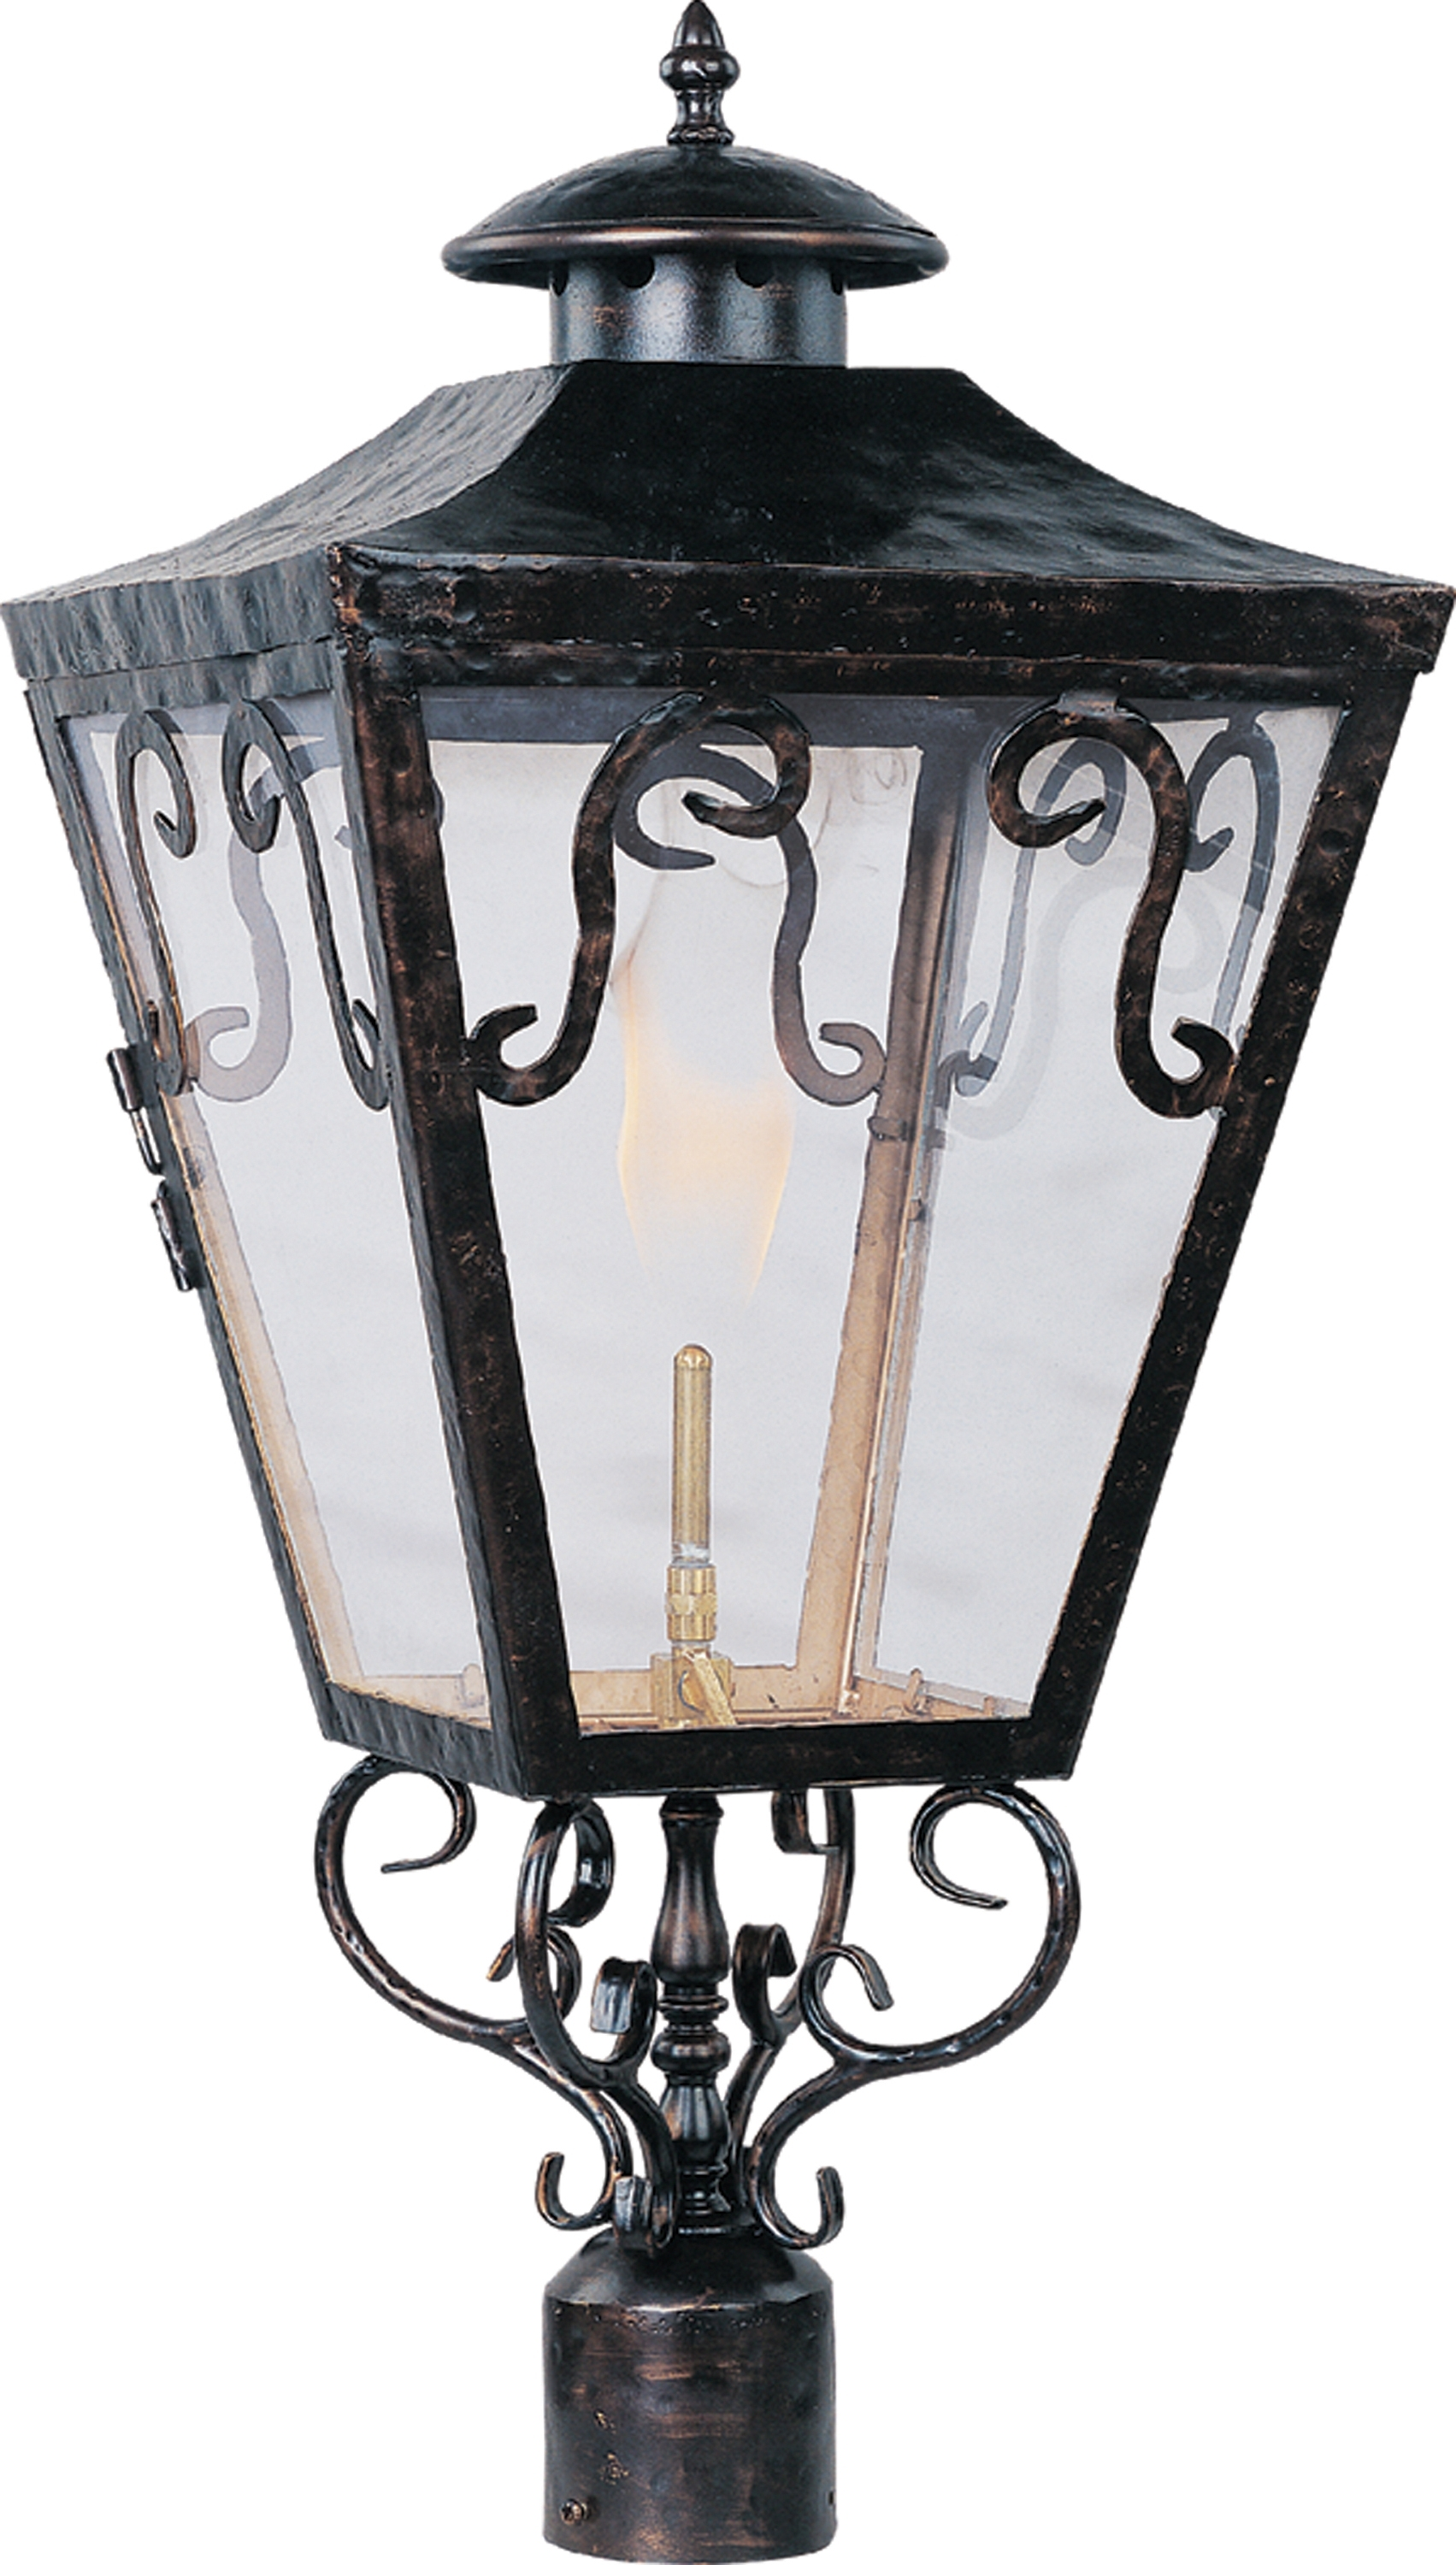 Cordoba Outdoor Post Gas Lantern – Outdoor Pole/post Mount – Maxim Intended For Newest Outdoor Pole Lanterns (View 11 of 20)